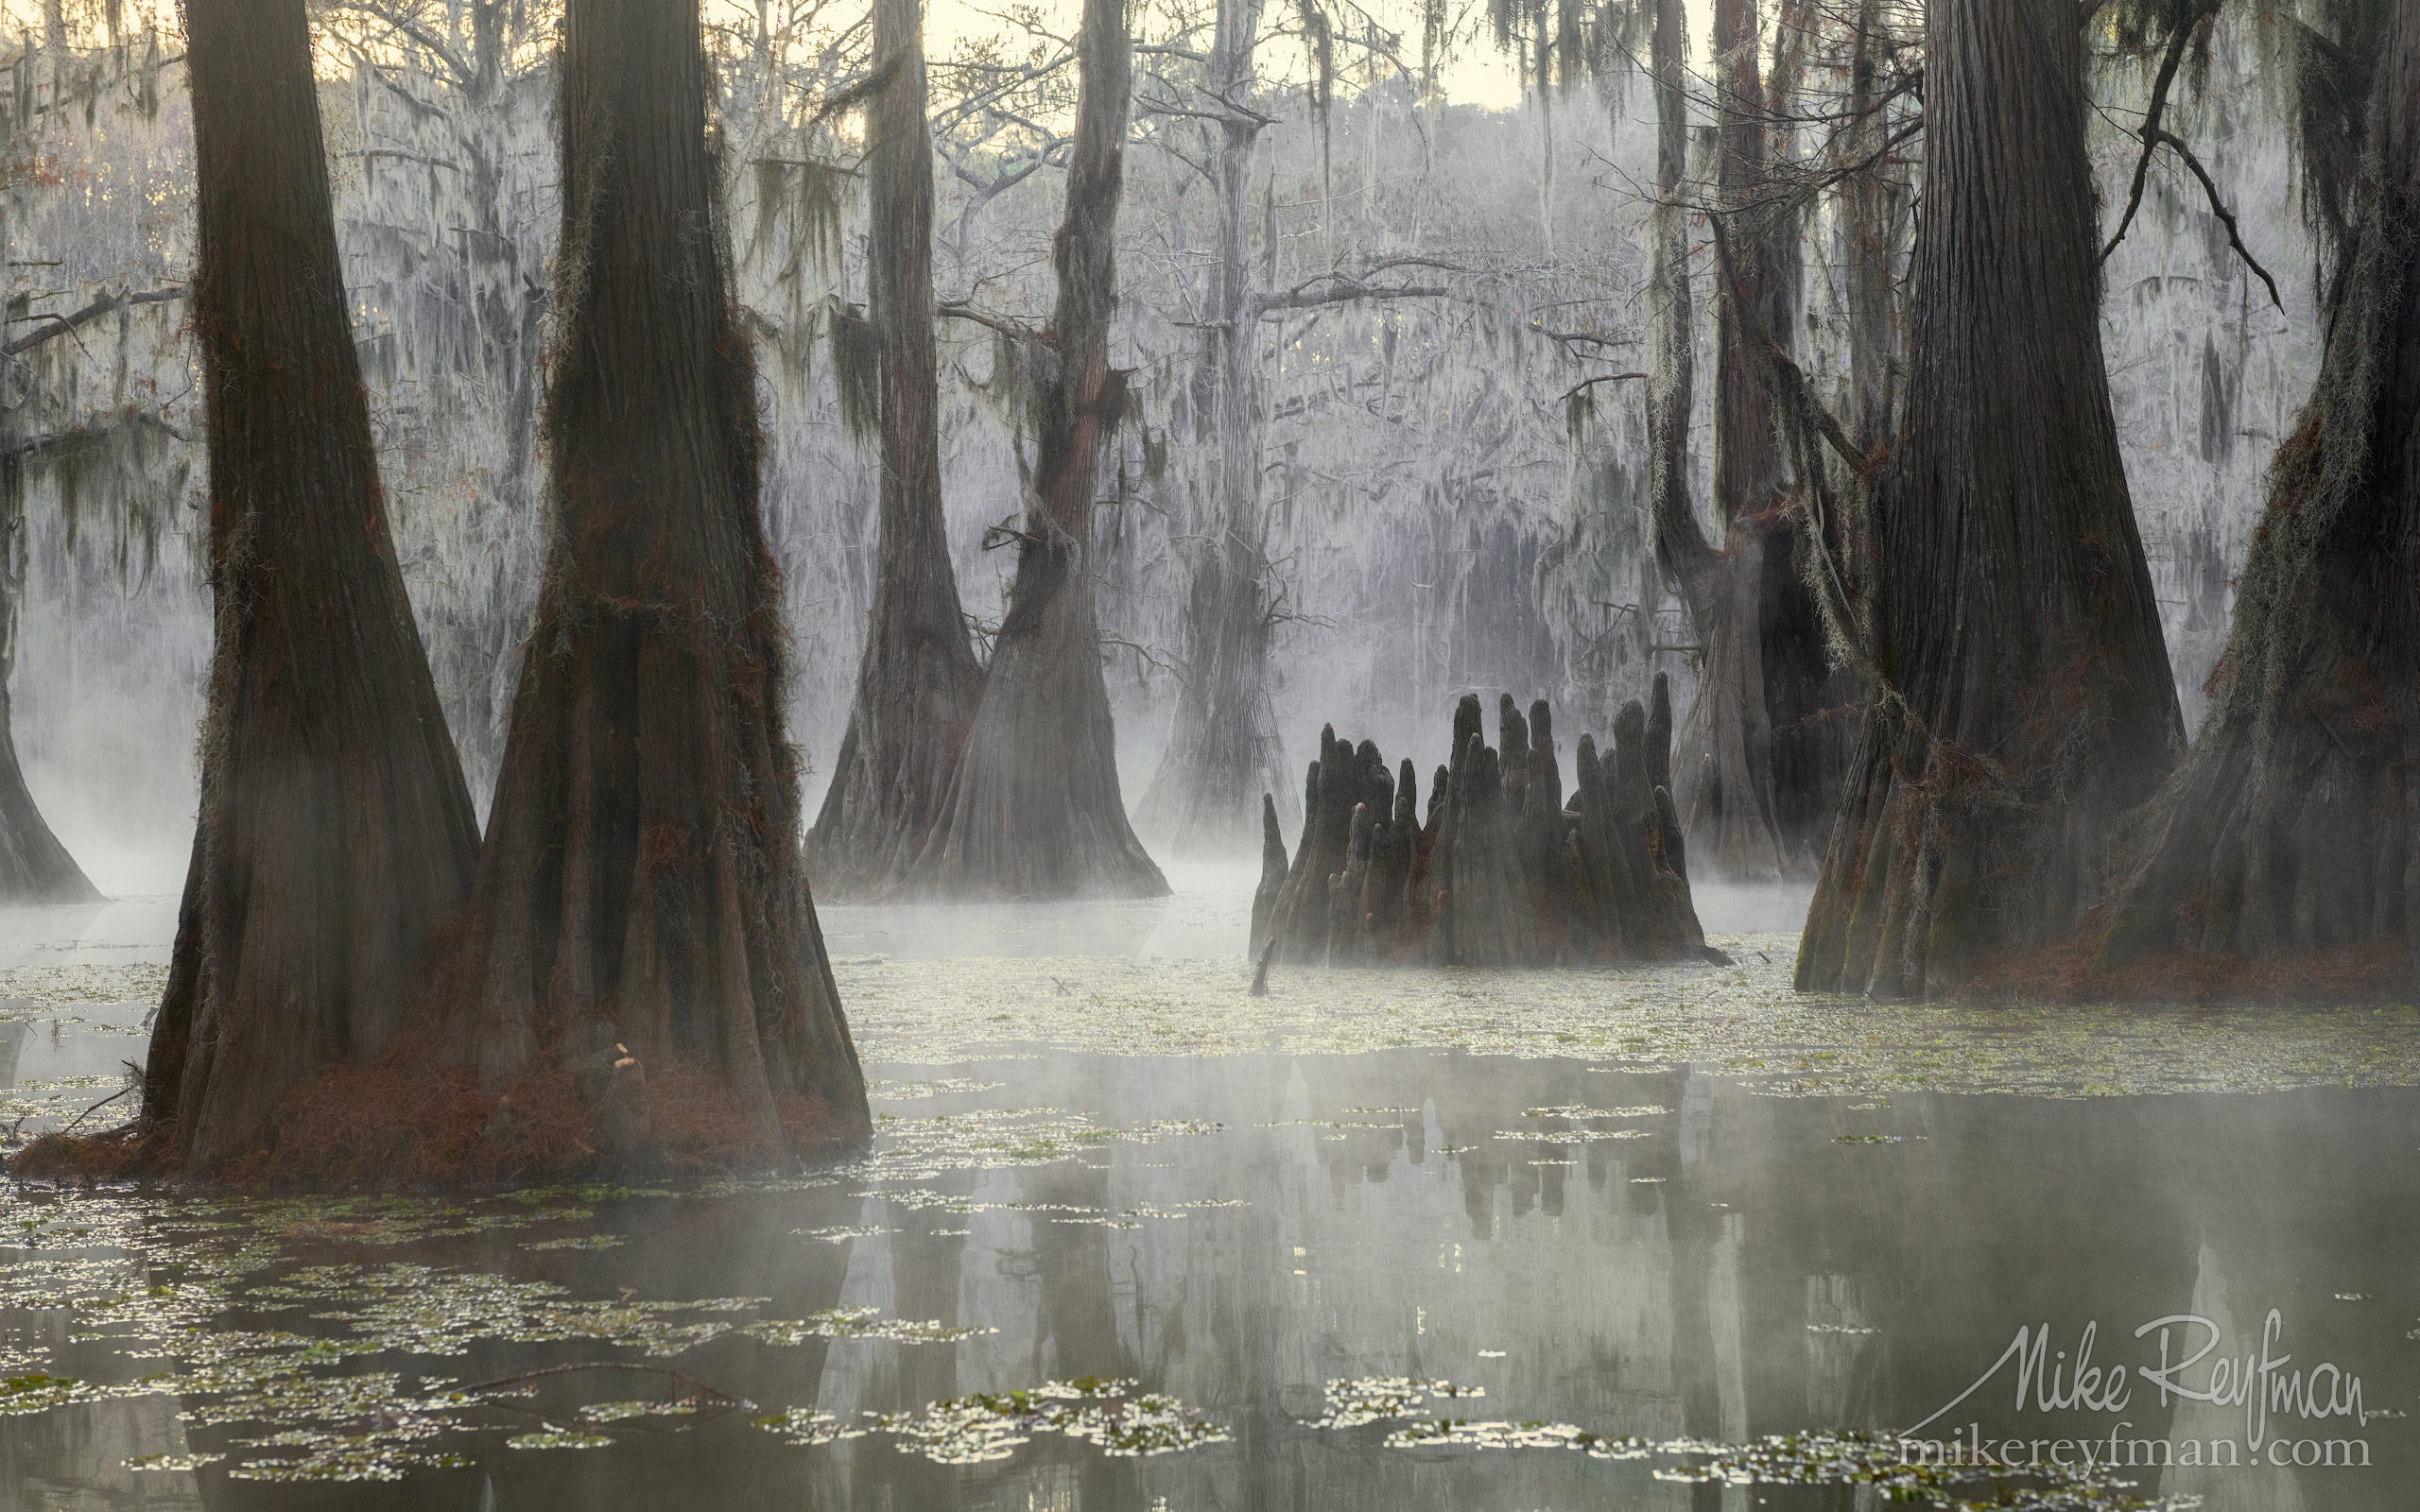 Swamp King's Crown. Bald Cypress trees in the swamp. Foggy morning on Caddo Lake, Texas, US 001-LT1-50A3303.jpg - Bold Cypress and Tupelo Trees in the swamps of Atchafalaya River Basin. Caddo, Martin and Fousse Lakes. Texas/Louisiana, USA. - Mike Reyfman Photography